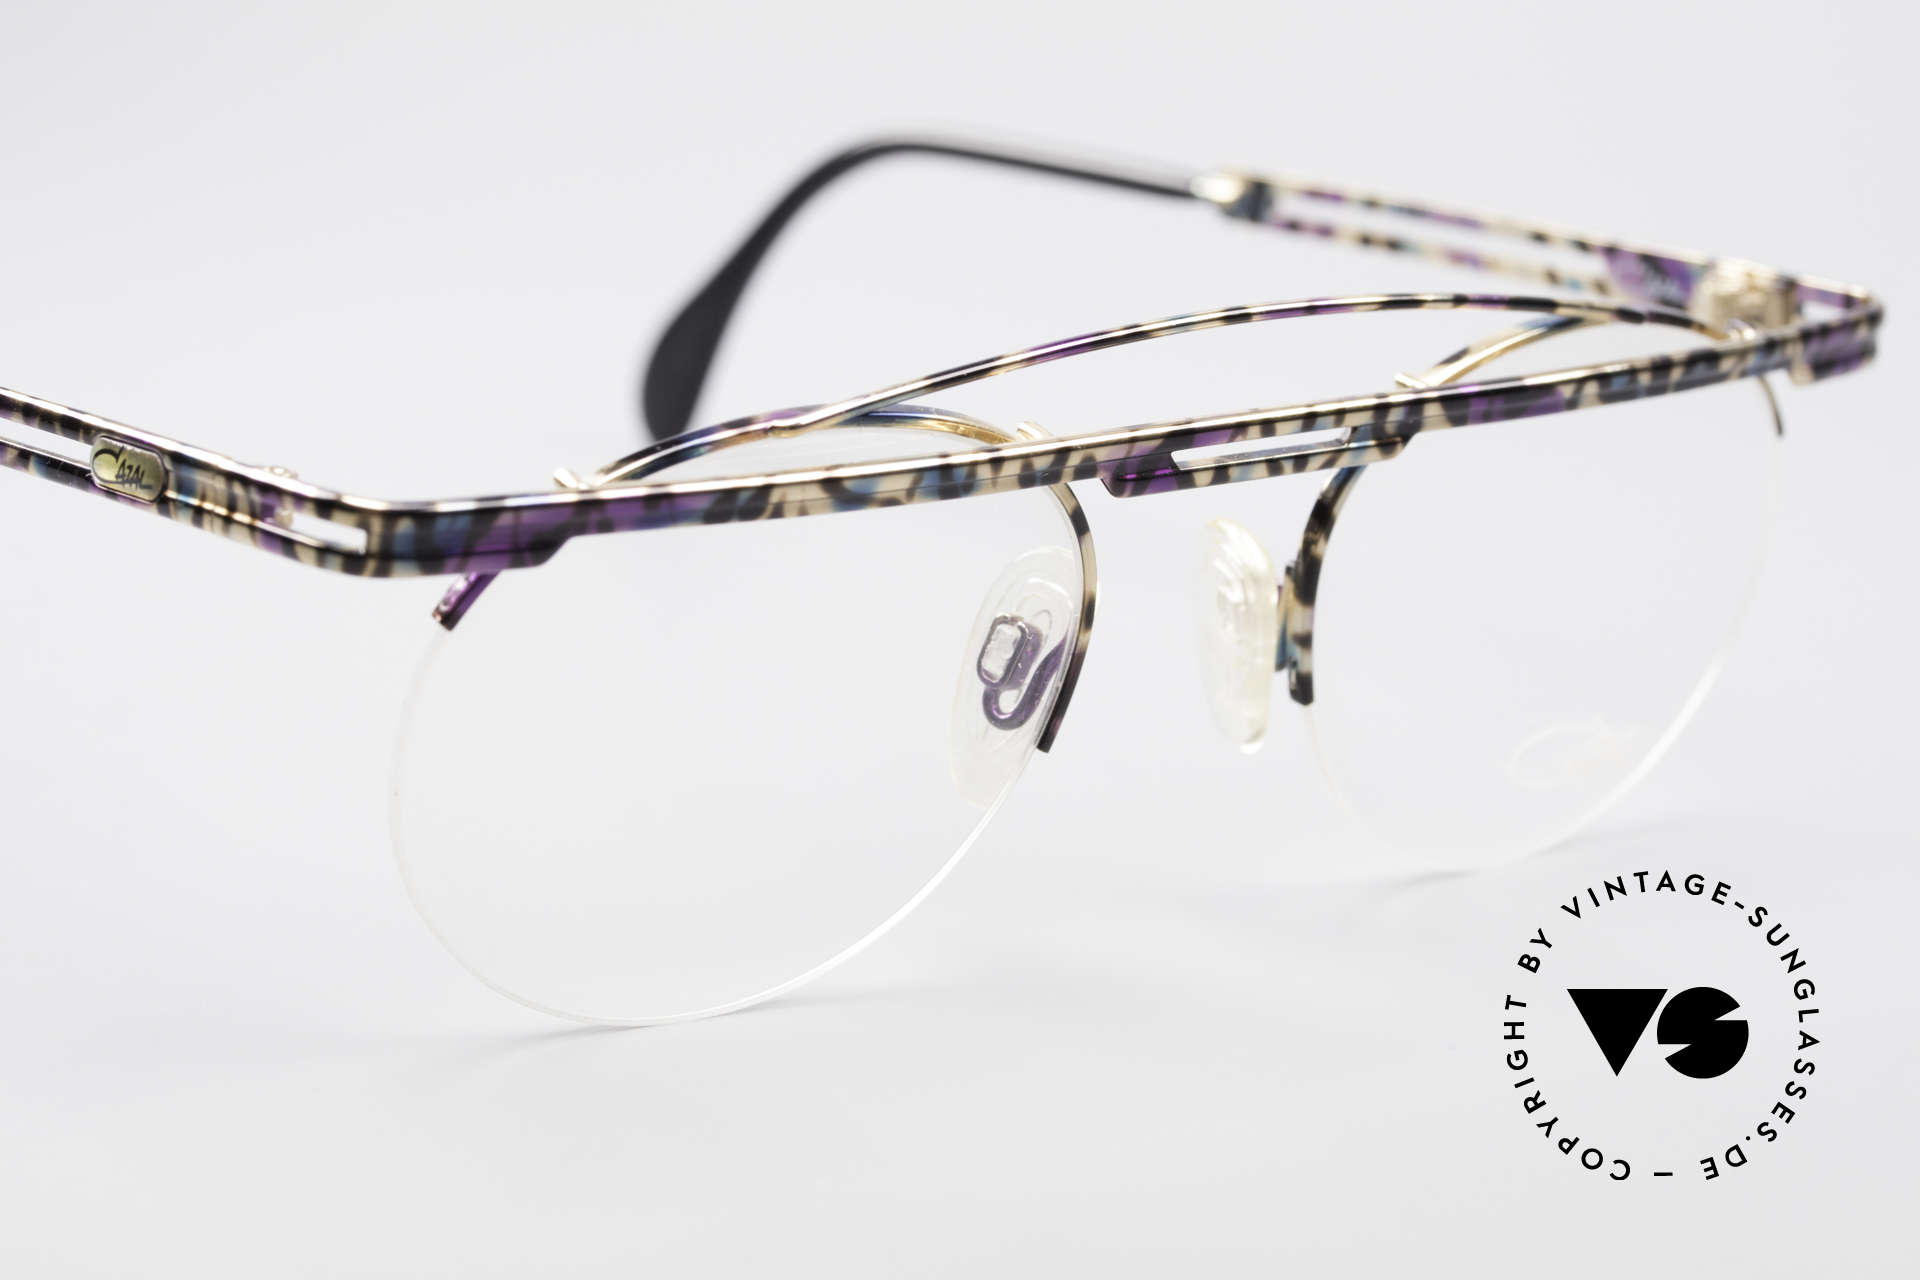 Cazal 748 Crazy Vintage No Retro Frame, tangible high-end craftsmanship (frame made in Germany), Made for Men and Women